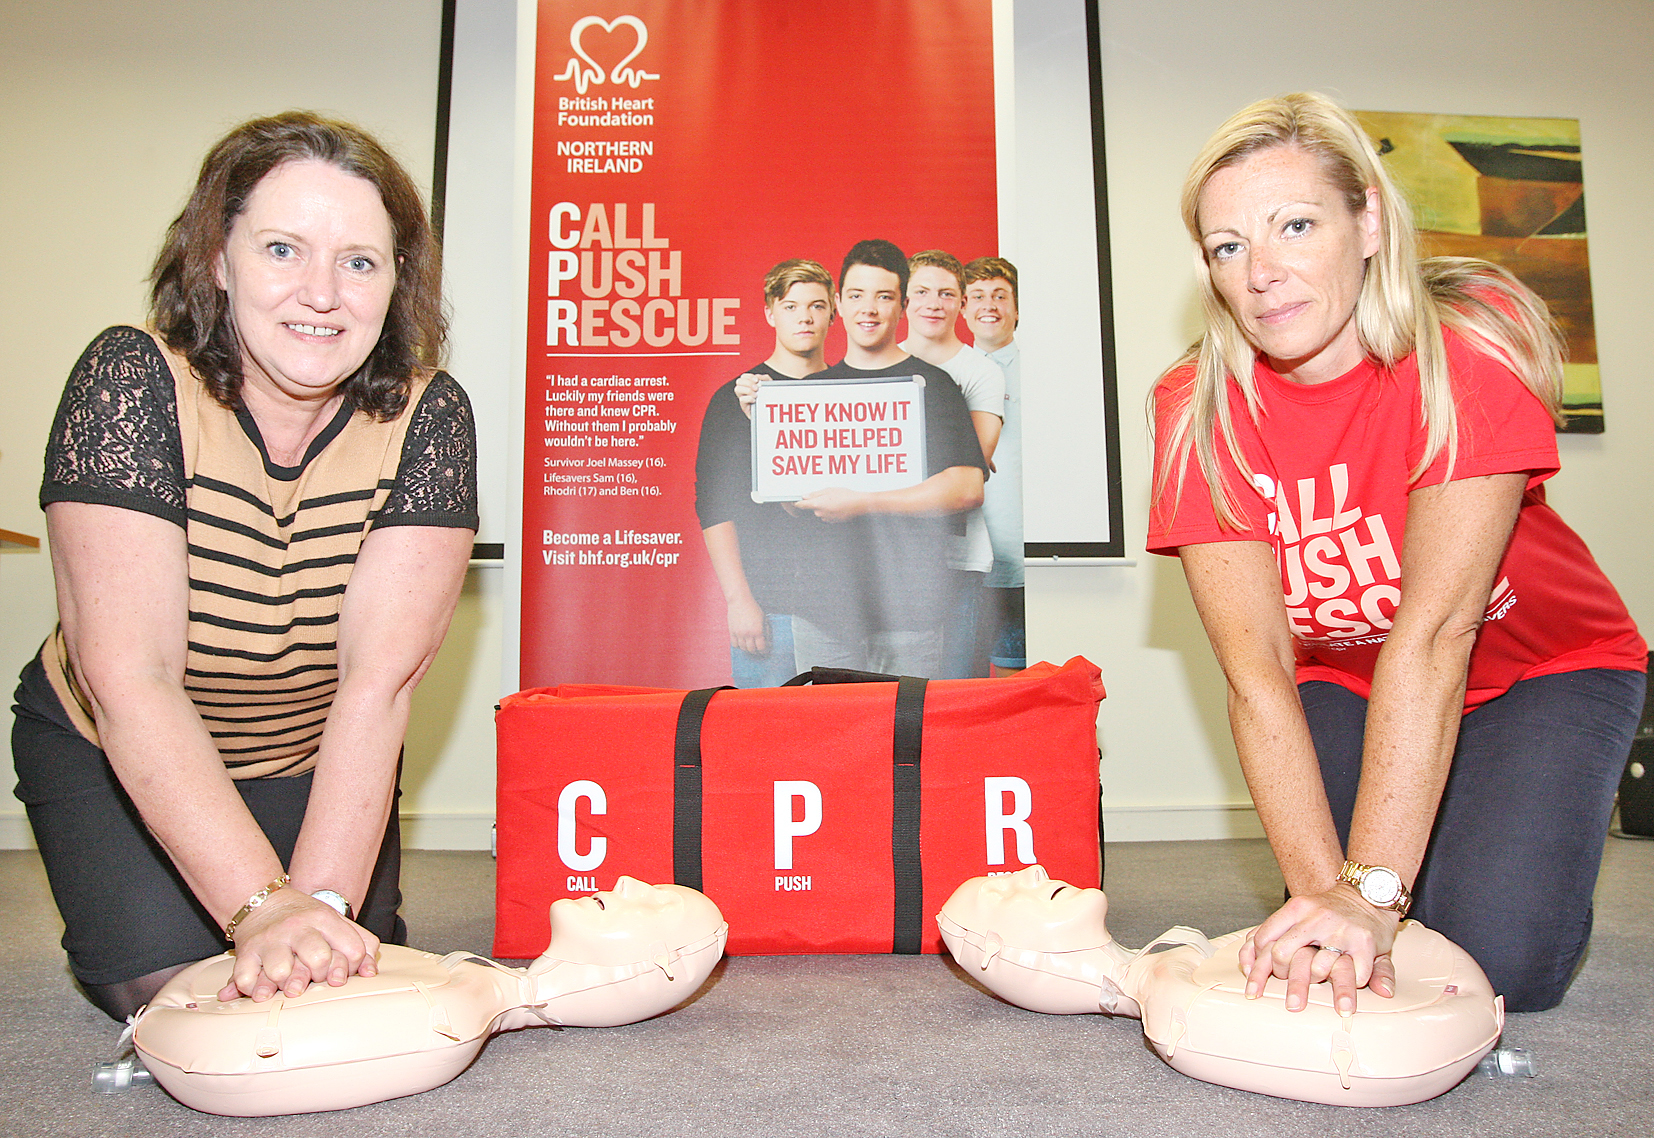 Heart foundation cpr 1510mj15